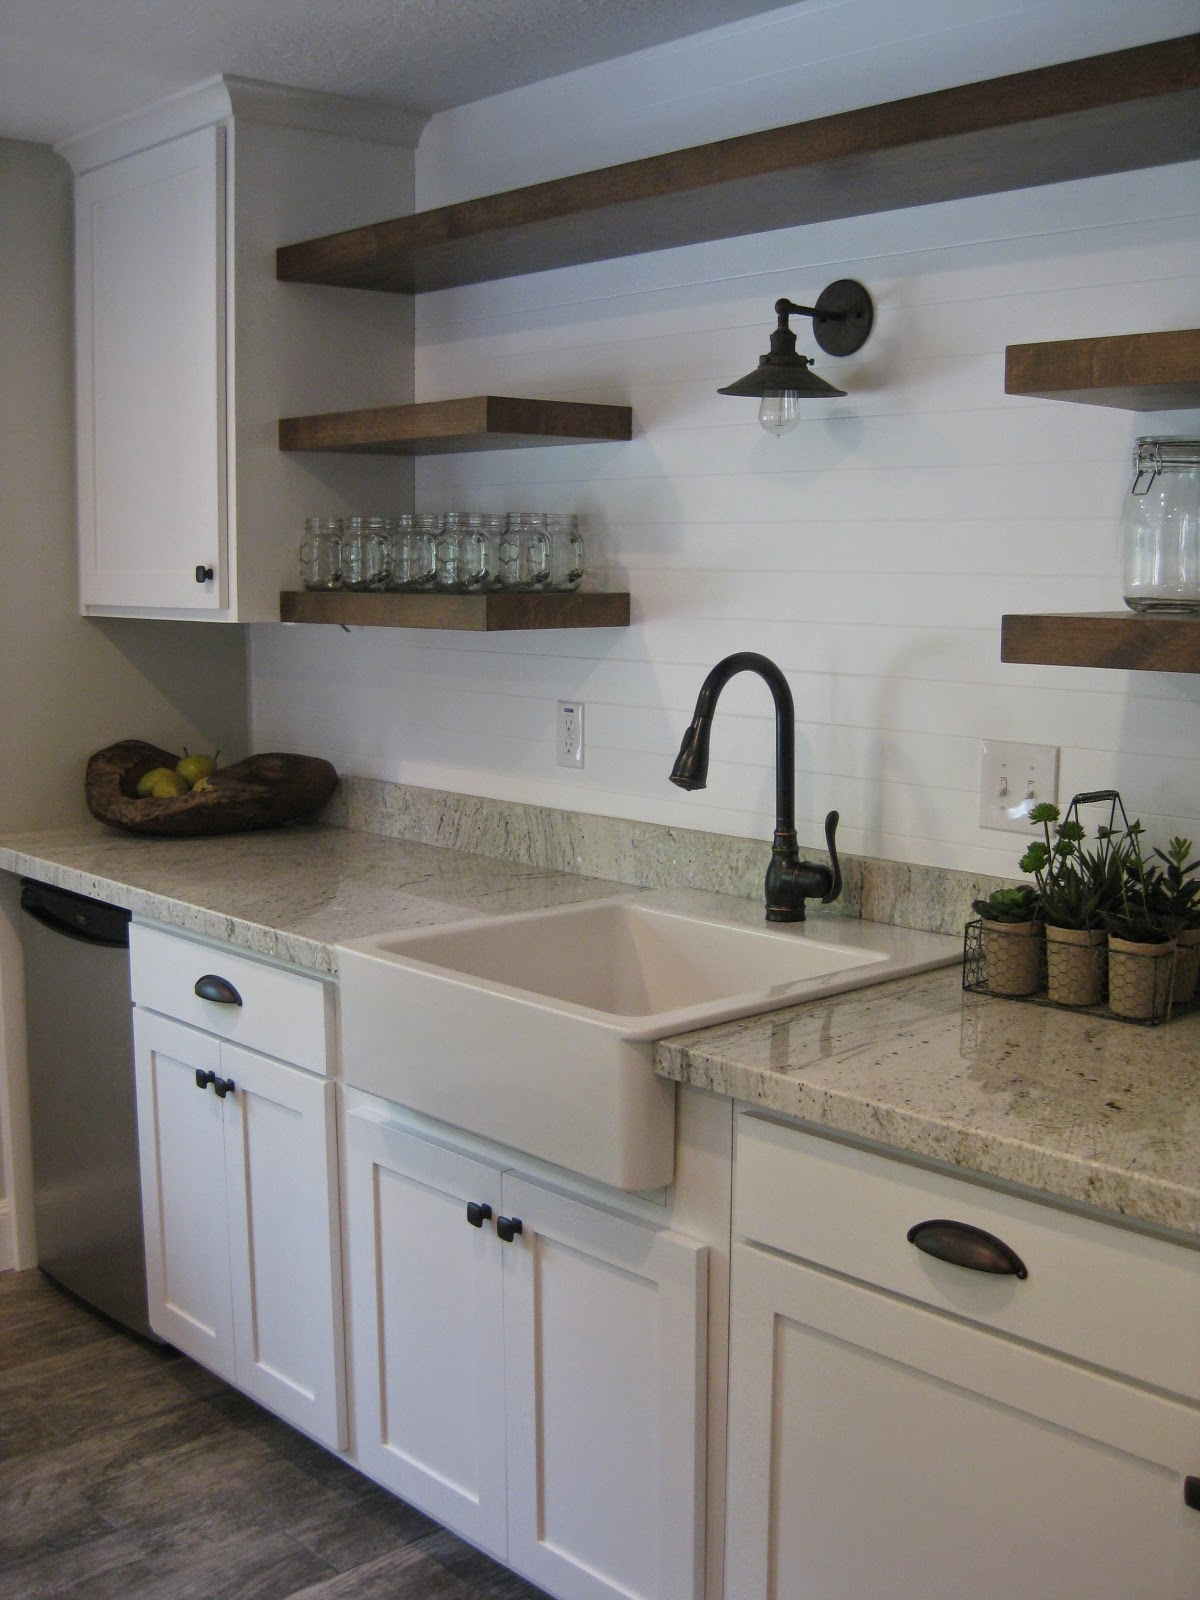 TDA Decorating And Design: Basement Kitchen Before & After